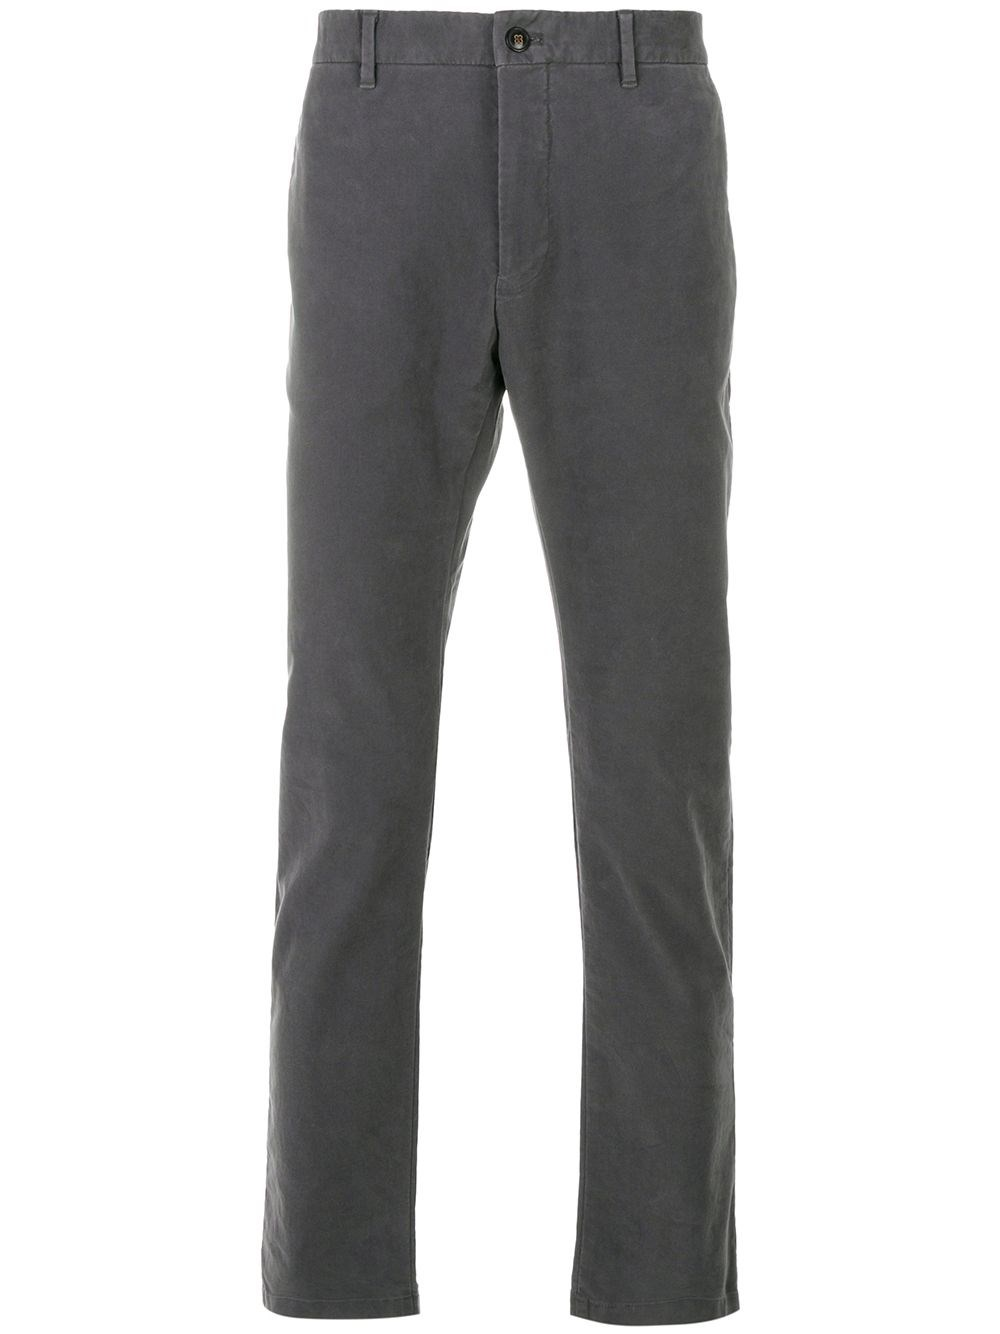 CLOSED Grey Cotton Chino Trousers